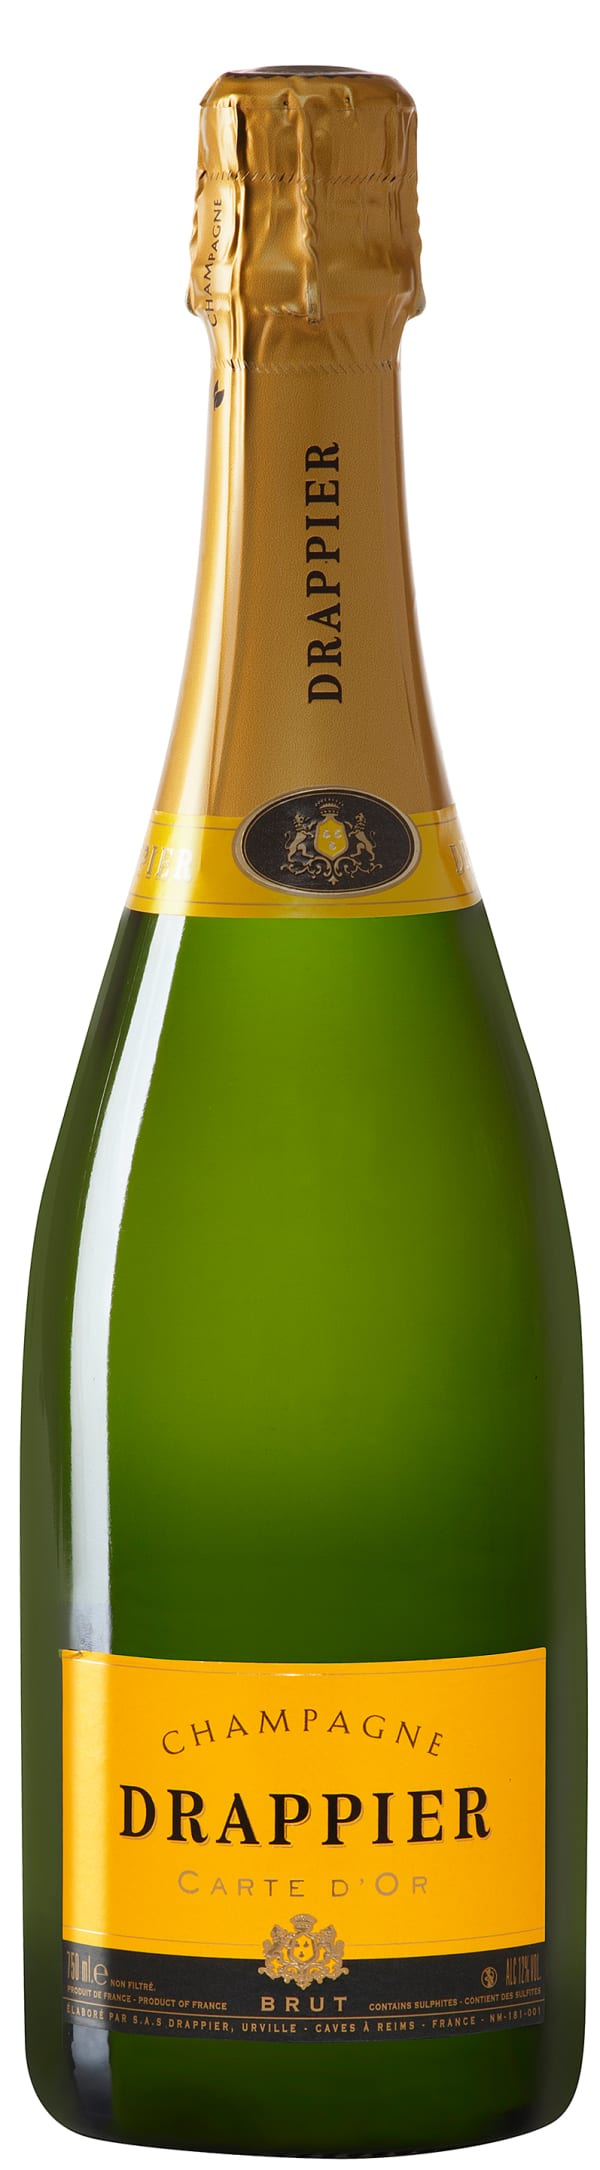 DRAPPIER CARTE D'OR Champagne 750ml